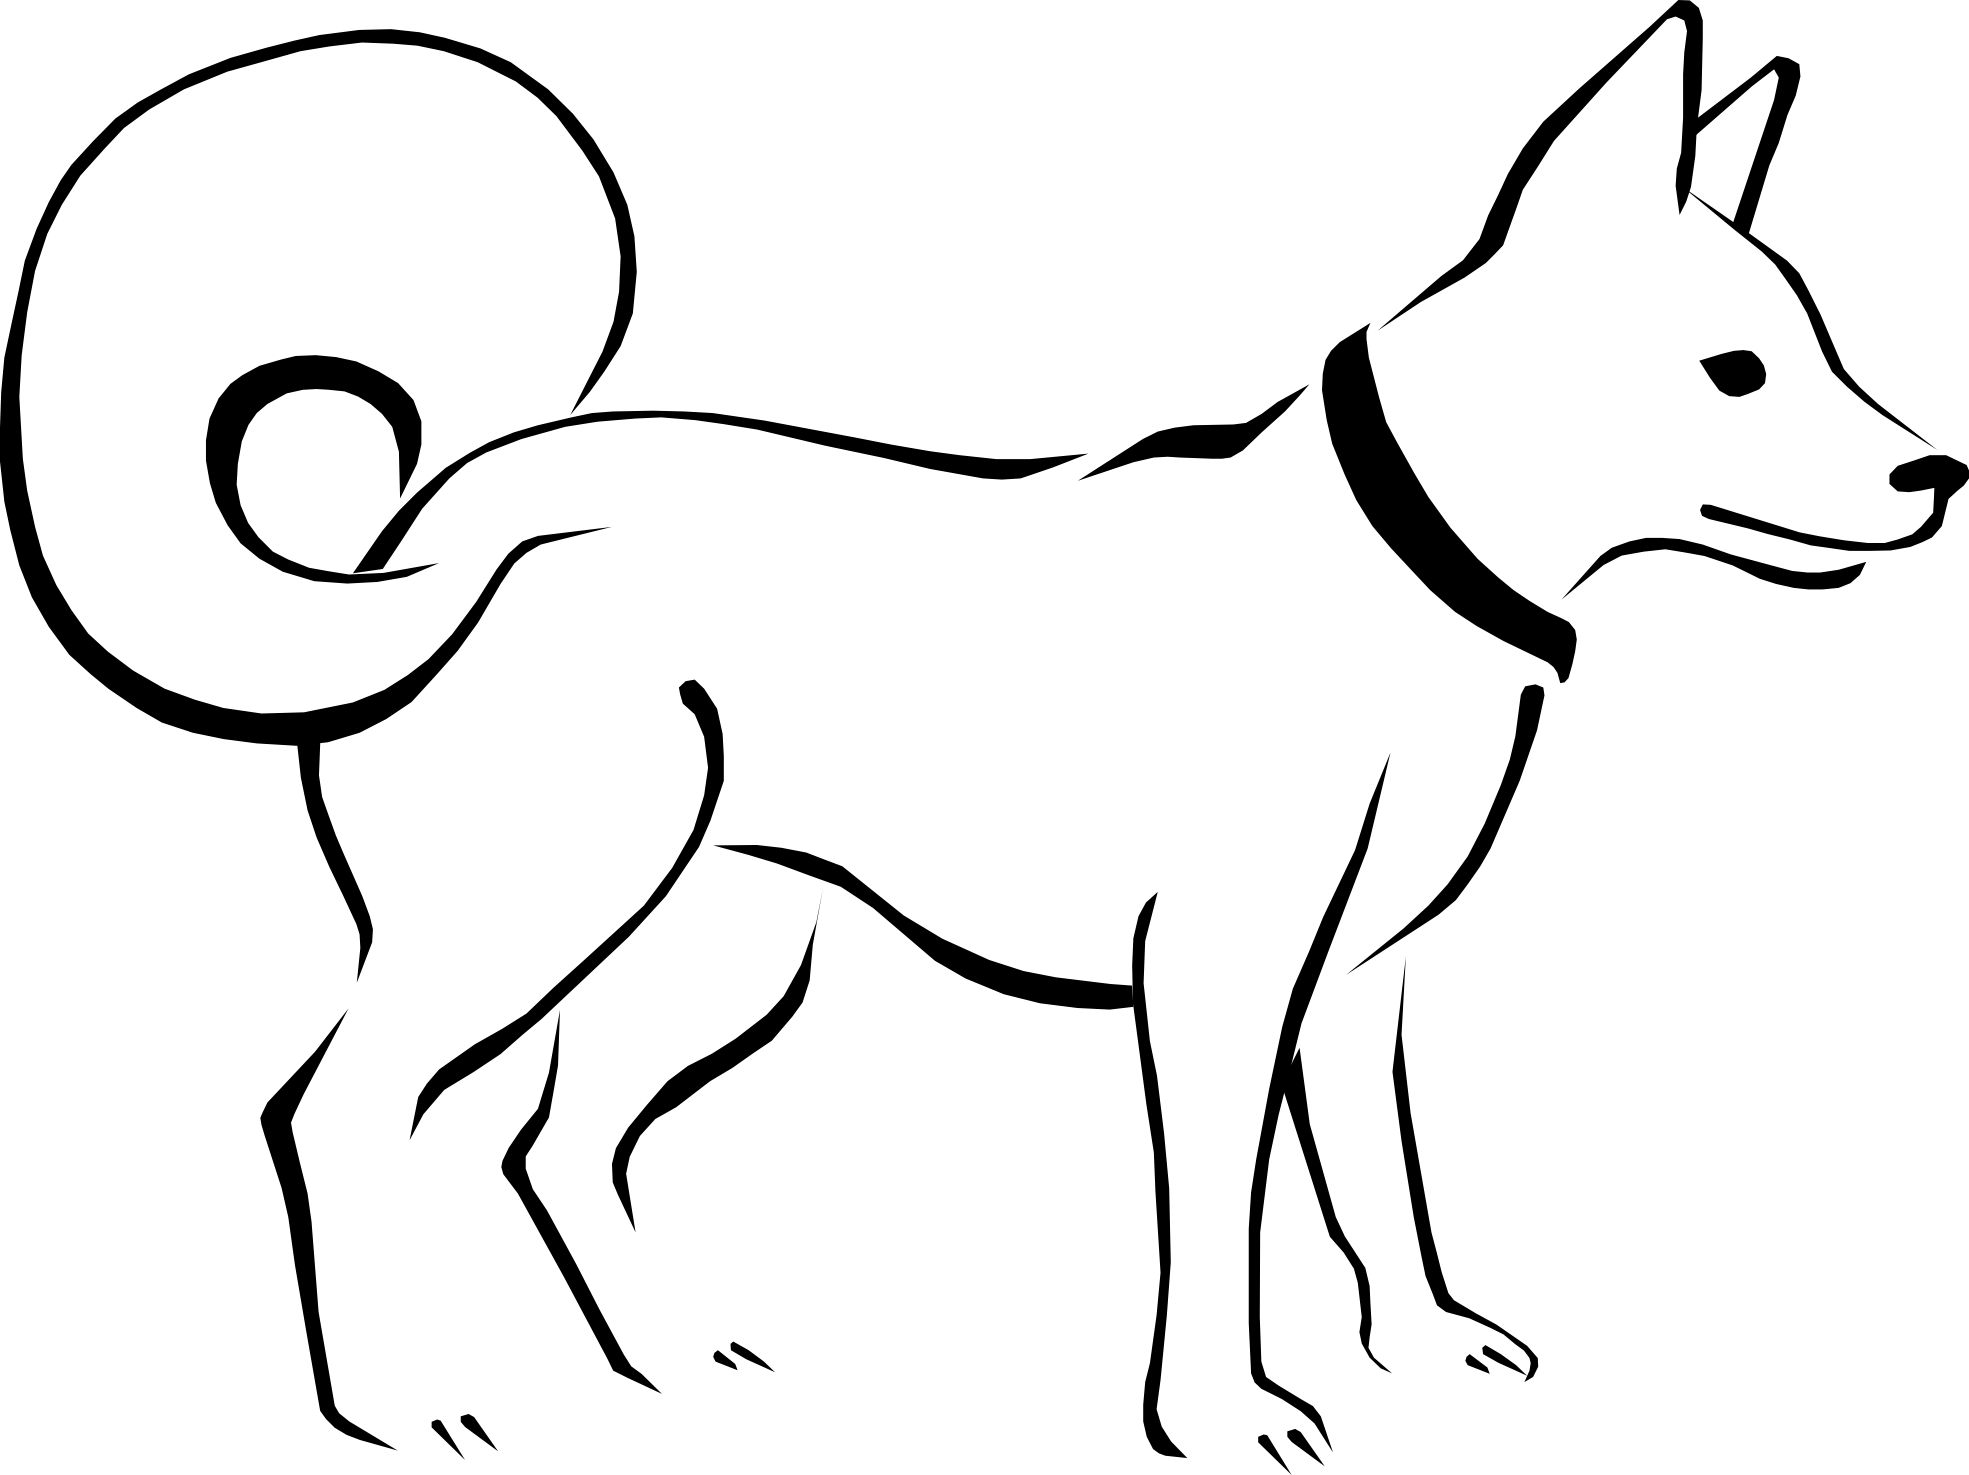 Dog clip art black and white. Free cliparts download on